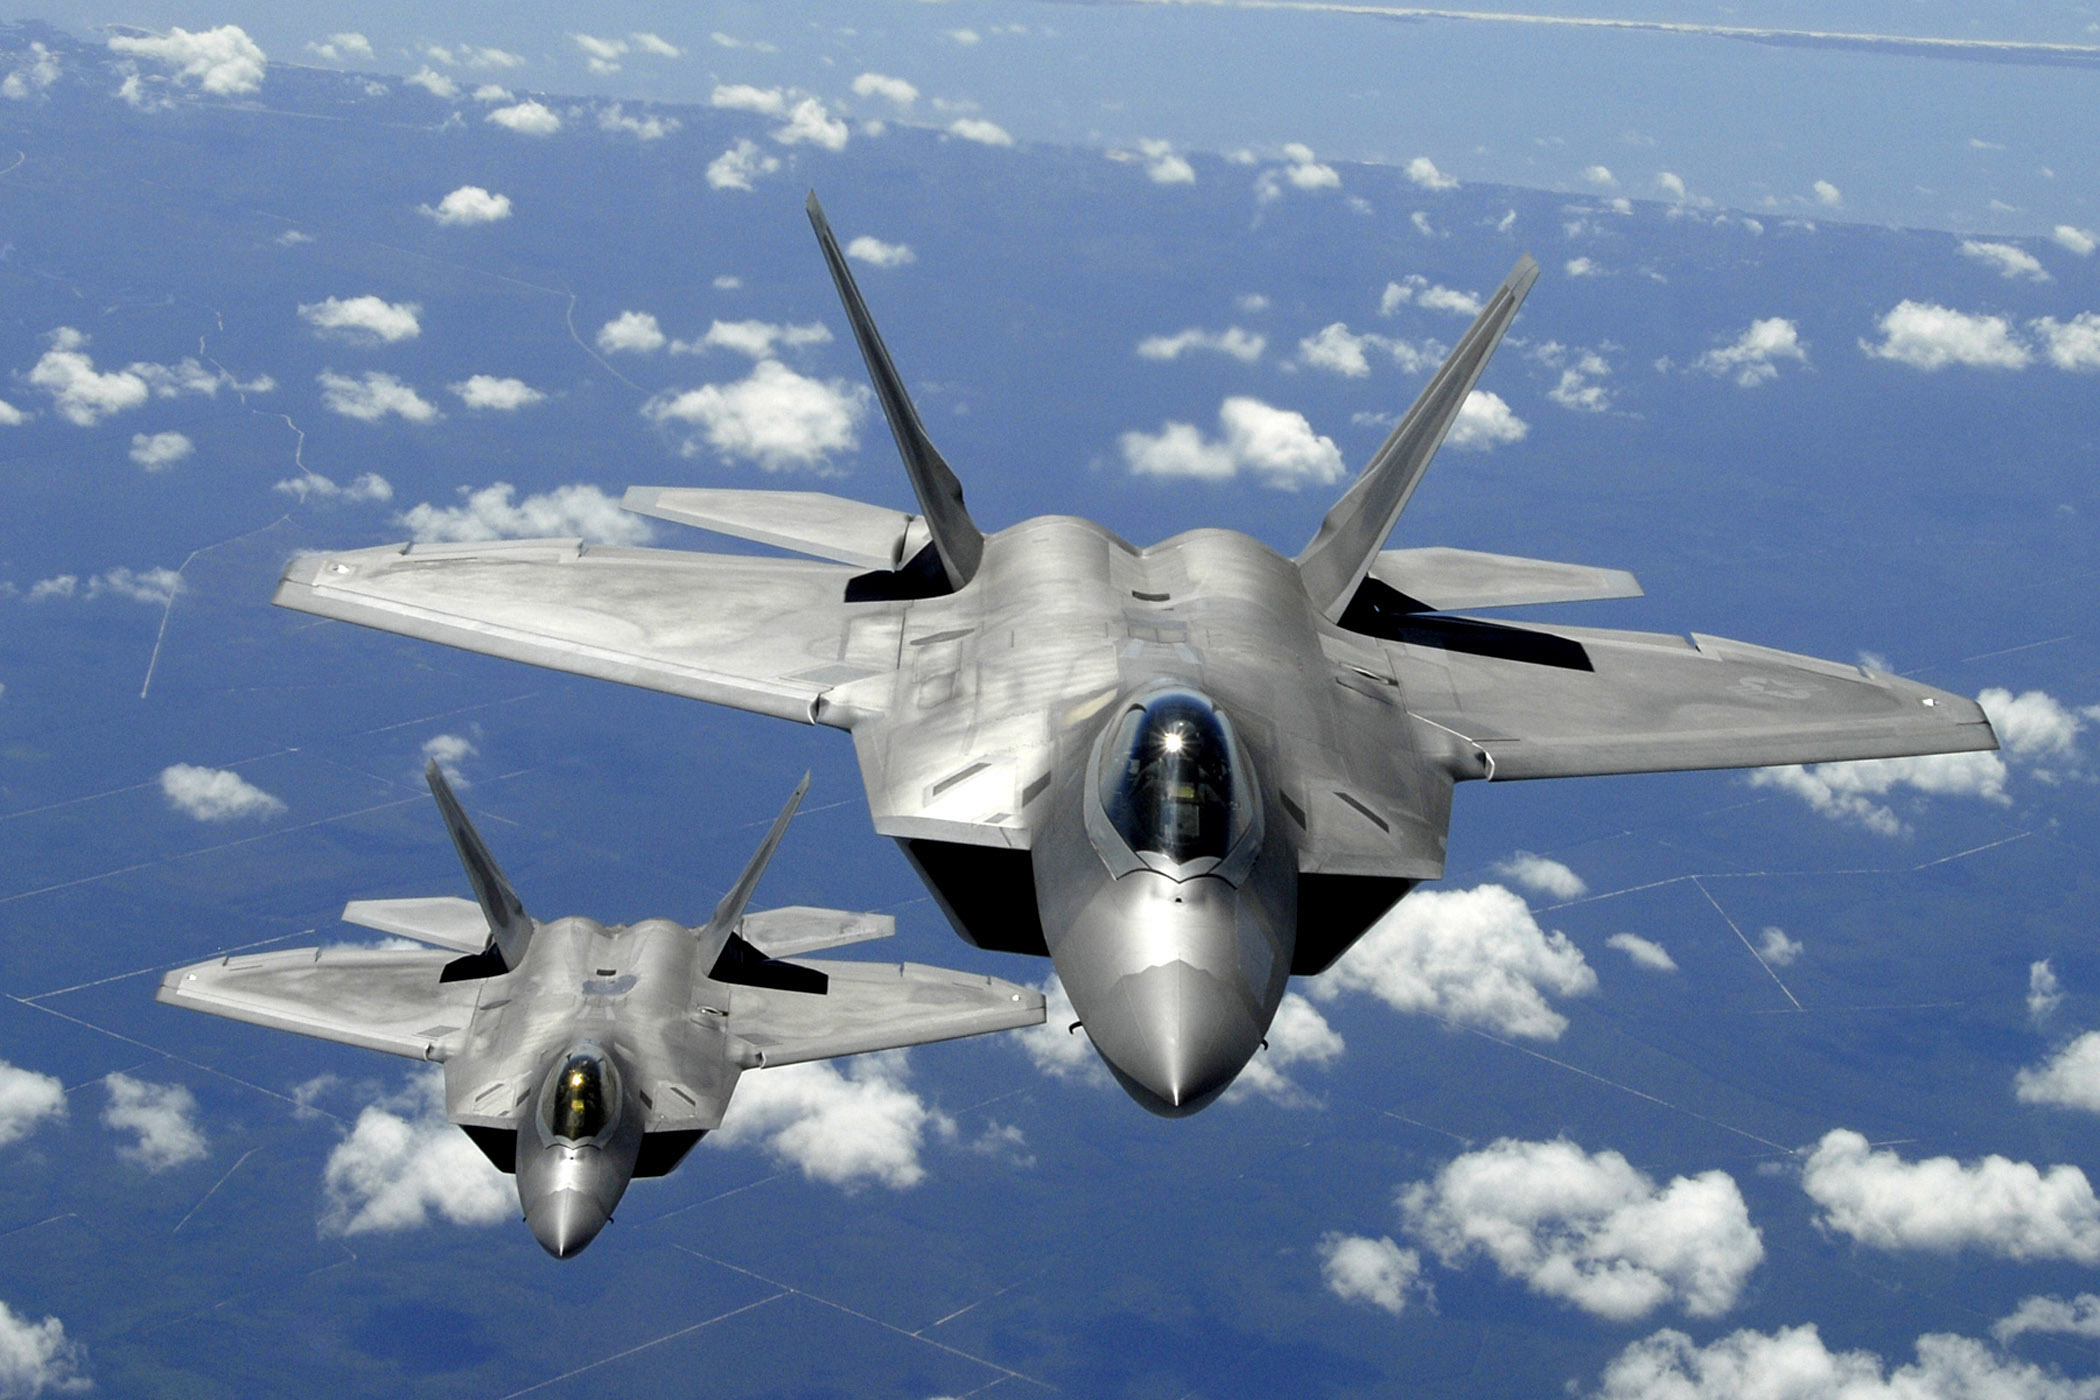 Military - Lockheed Martin F-22 Raptor  - F-22 Raptor - Usaf Wallpaper